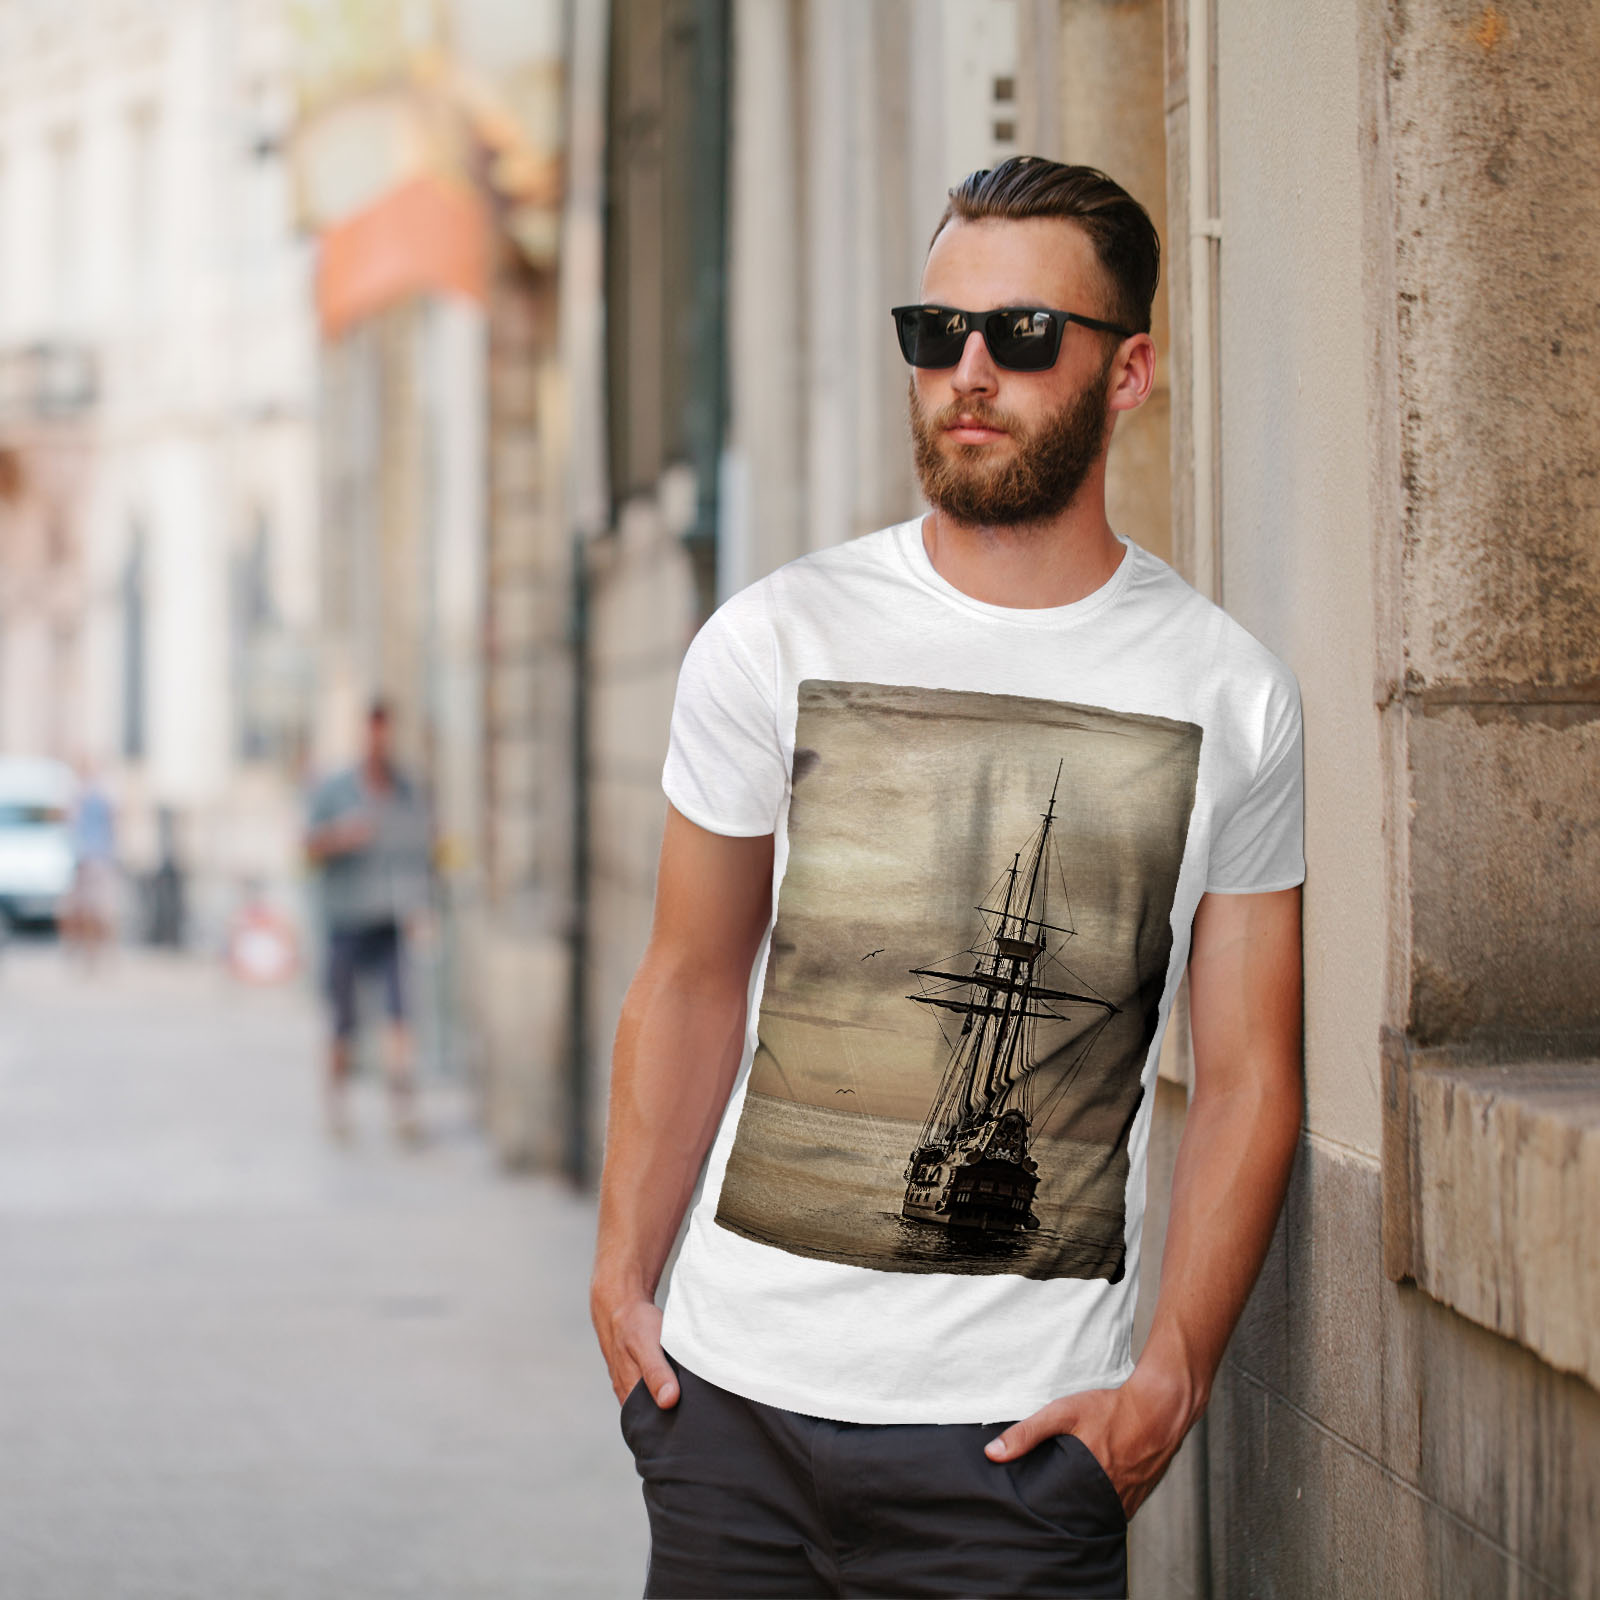 Wellcoda-Ship-Old-Ocean-Vintage-Mens-T-shirt-Sea-Graphic-Design-Printed-Tee thumbnail 11